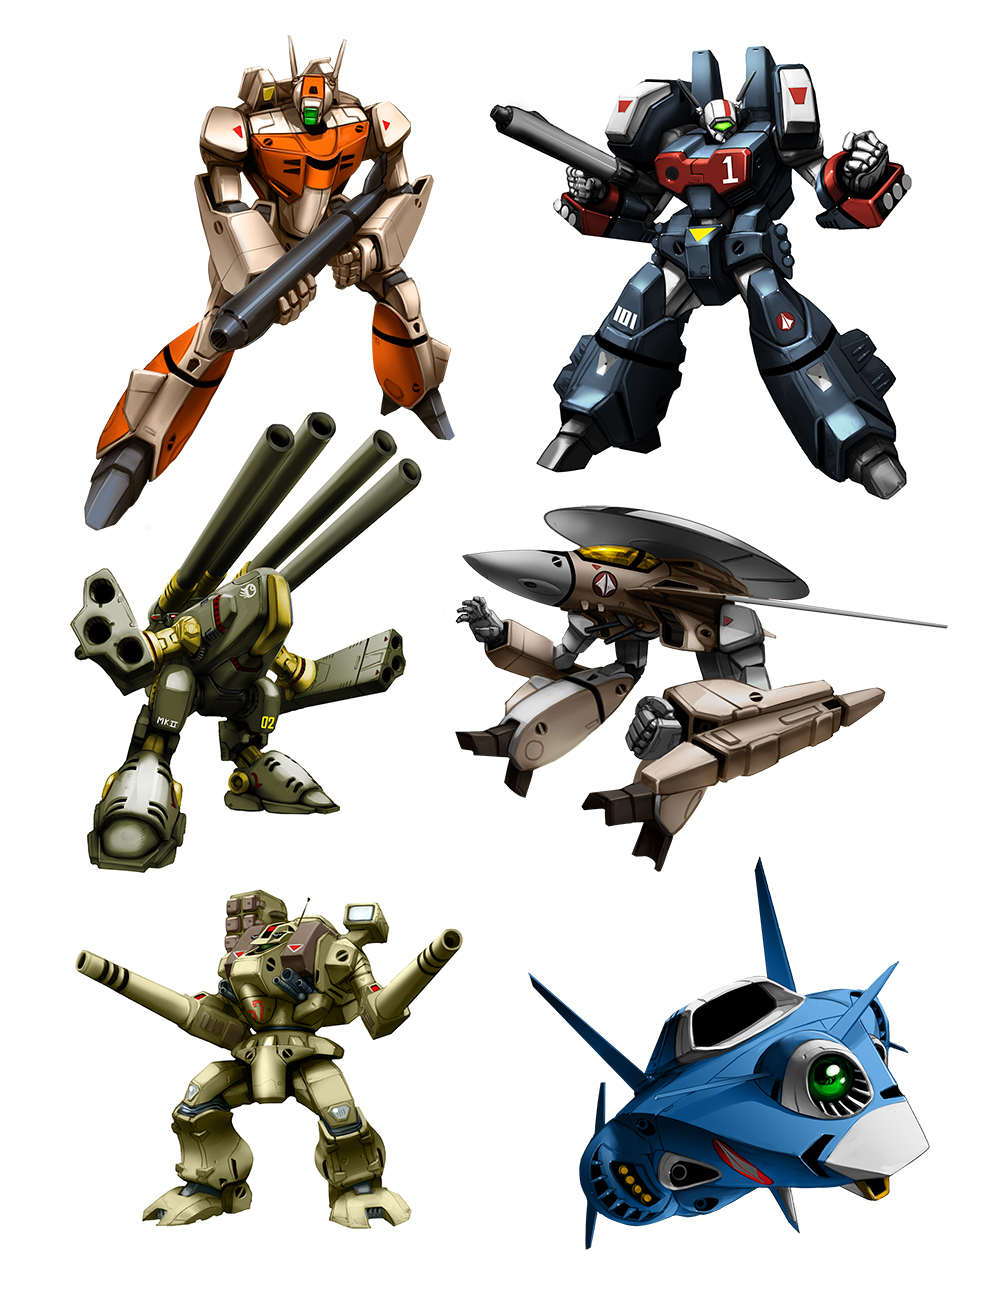 Mecha art for Robotech RPG Tactics